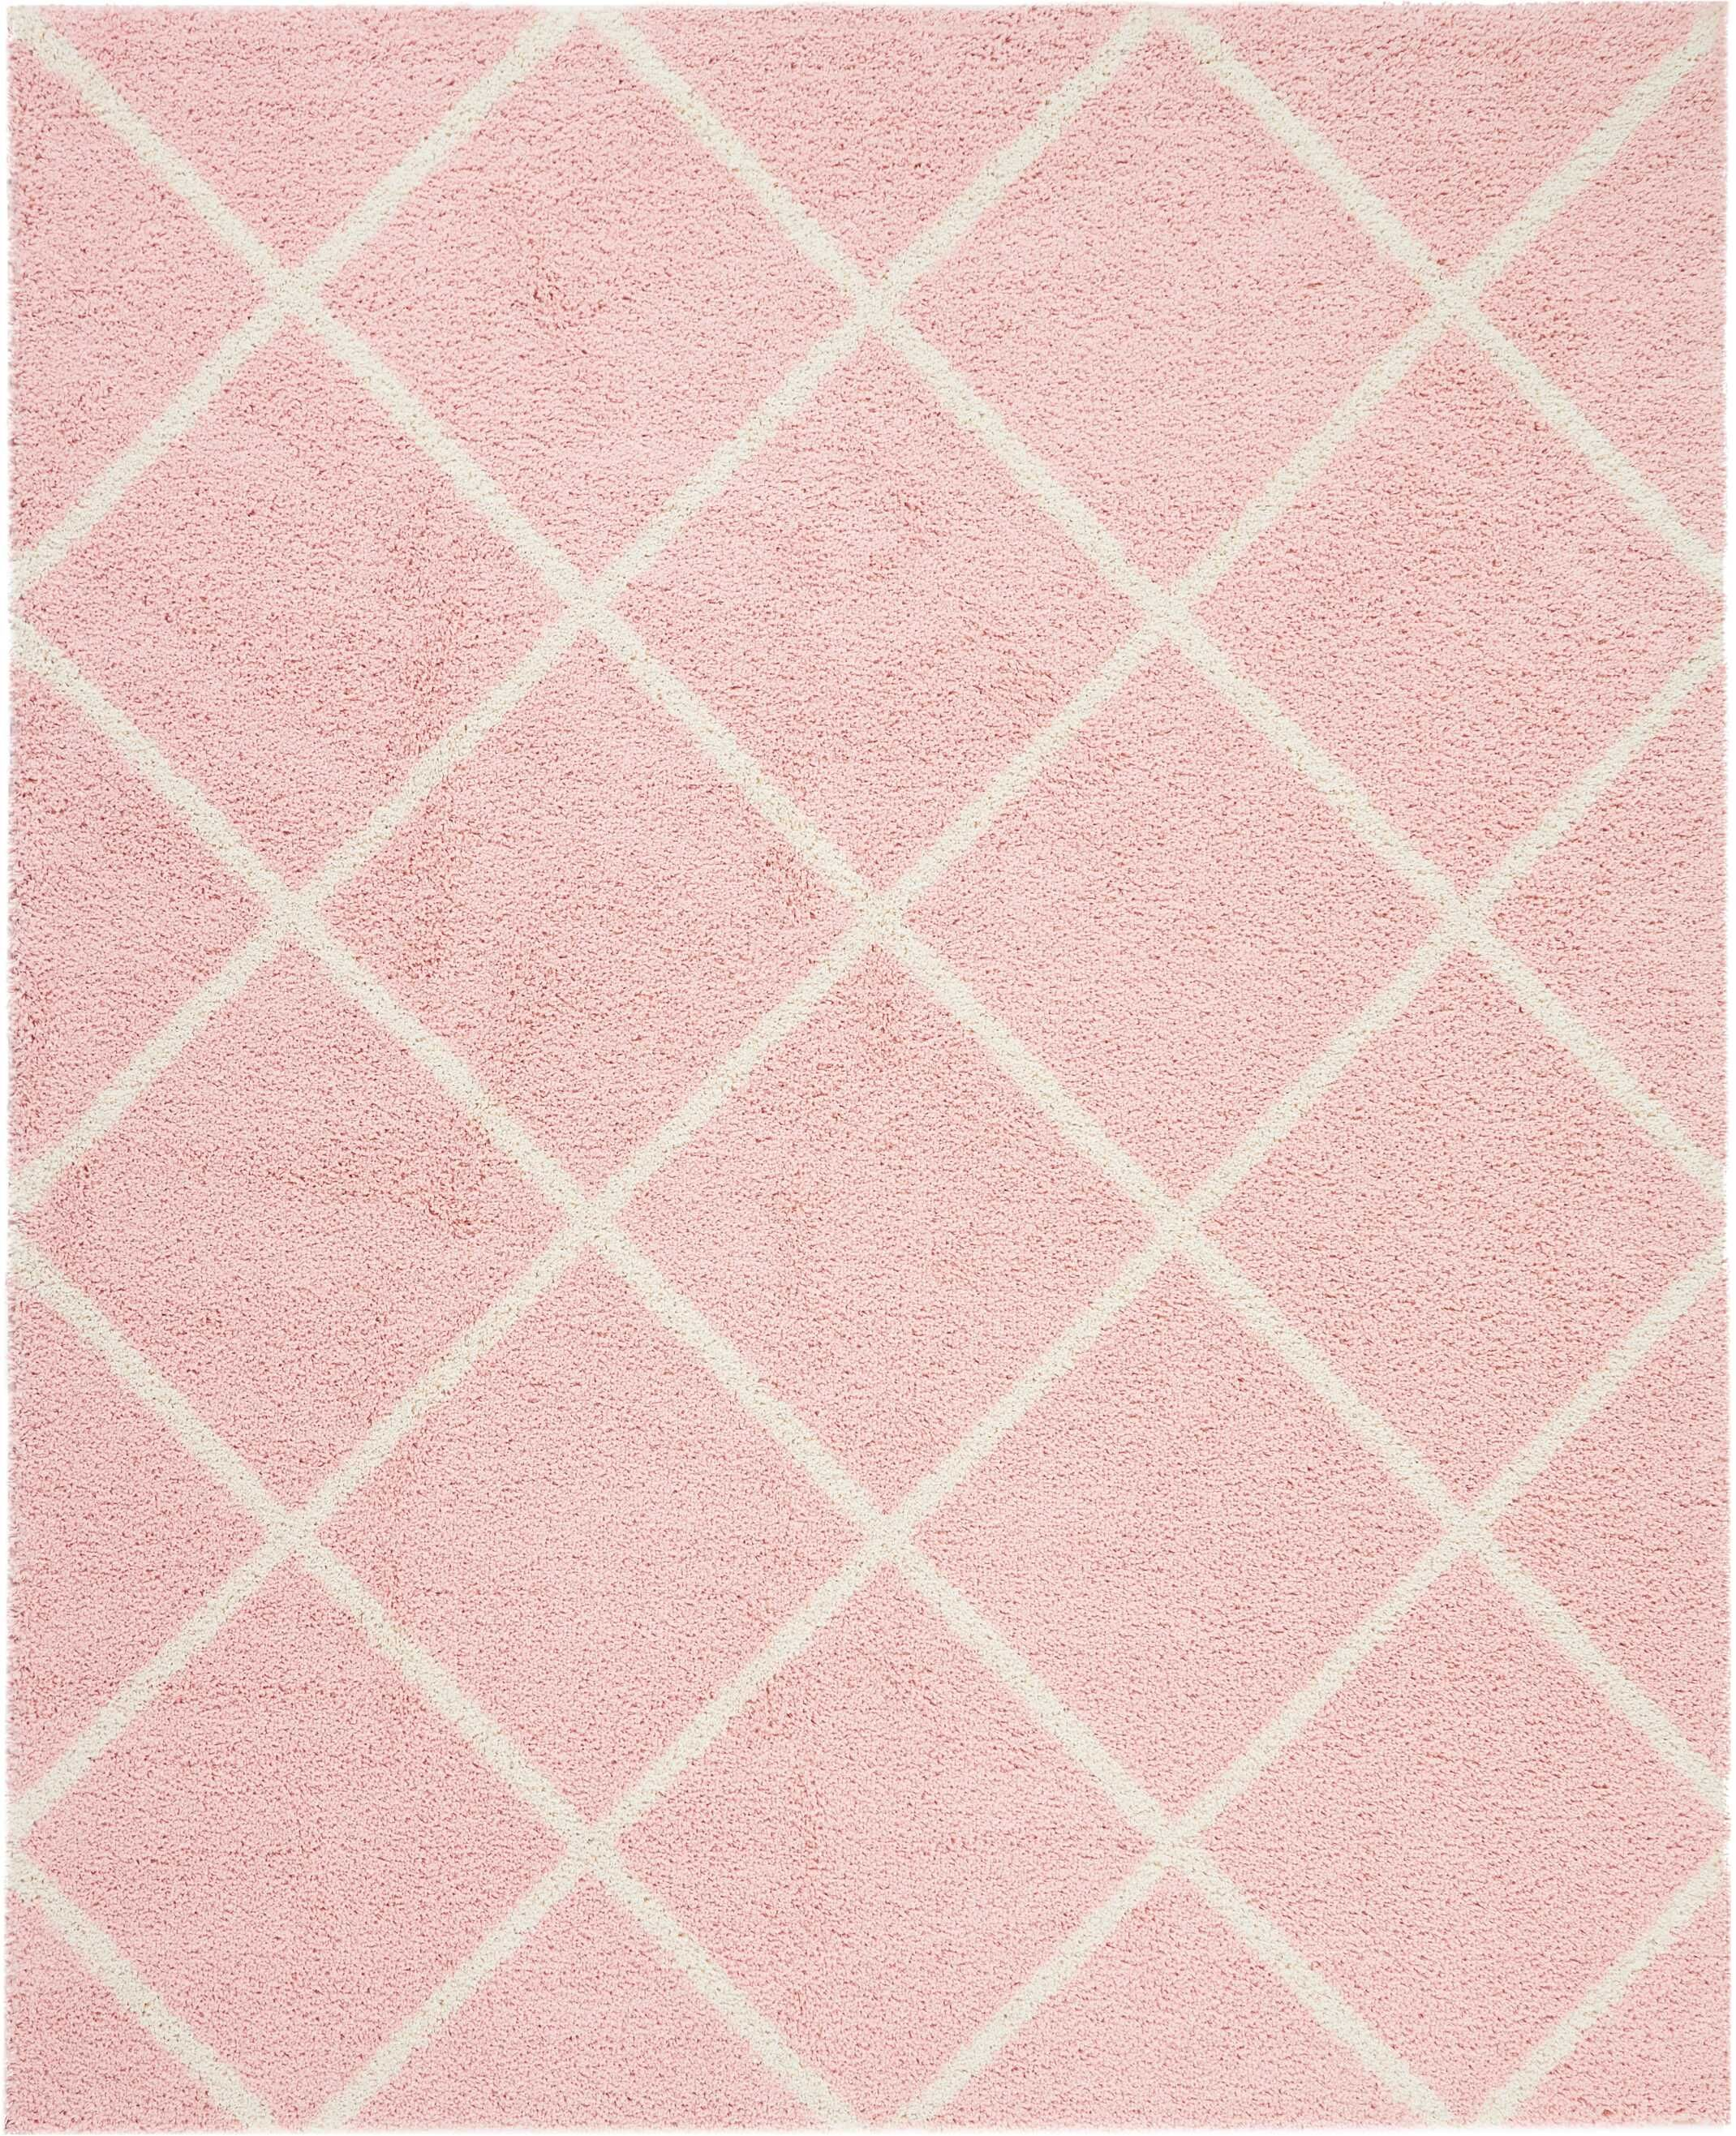 Puyallup River Blush Area Rug Rug Size: Rectangle 8'2